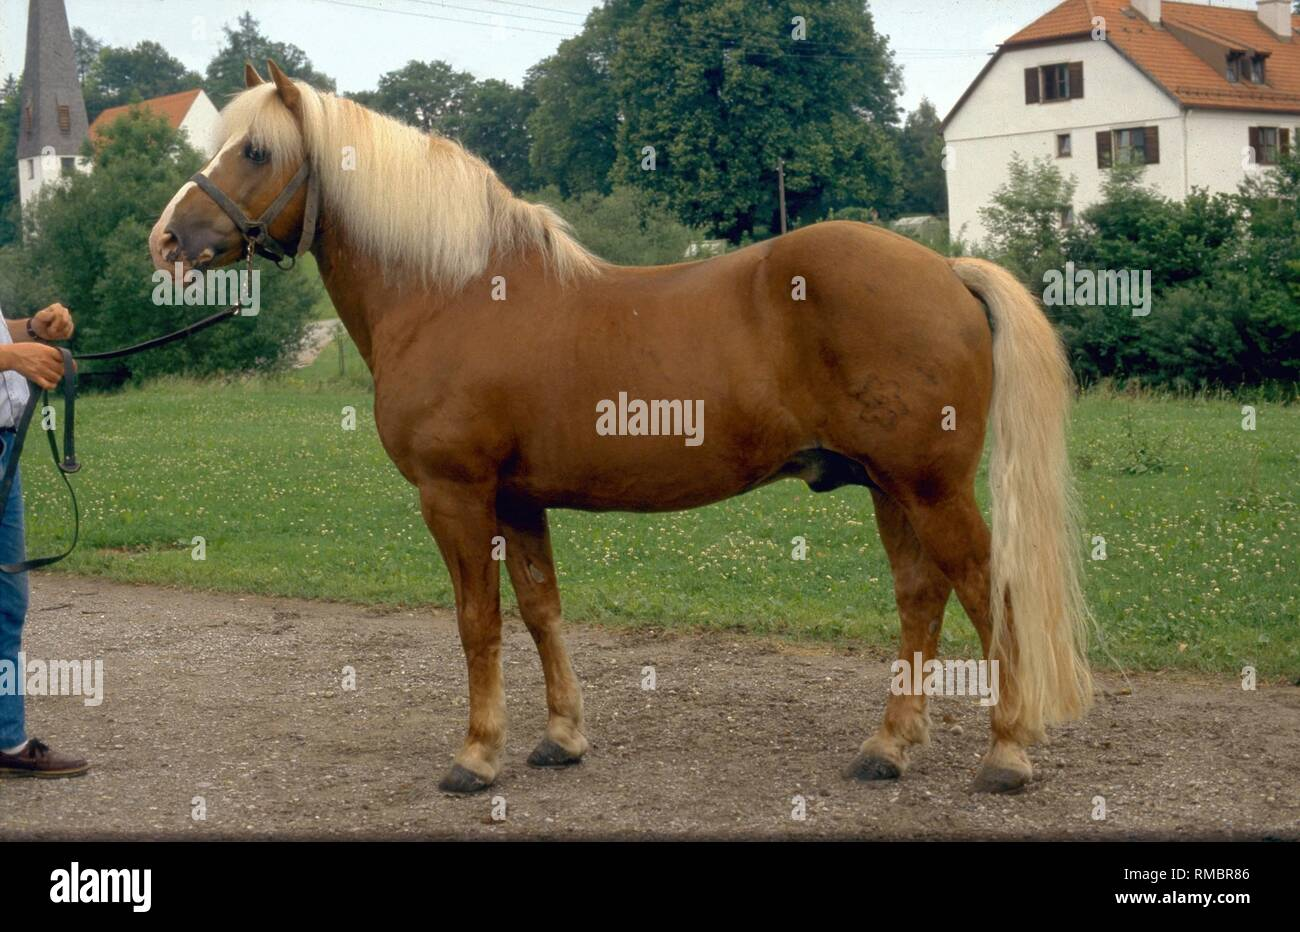 Page 3 Small Draft Horse High Resolution Stock Photography And Images Alamy